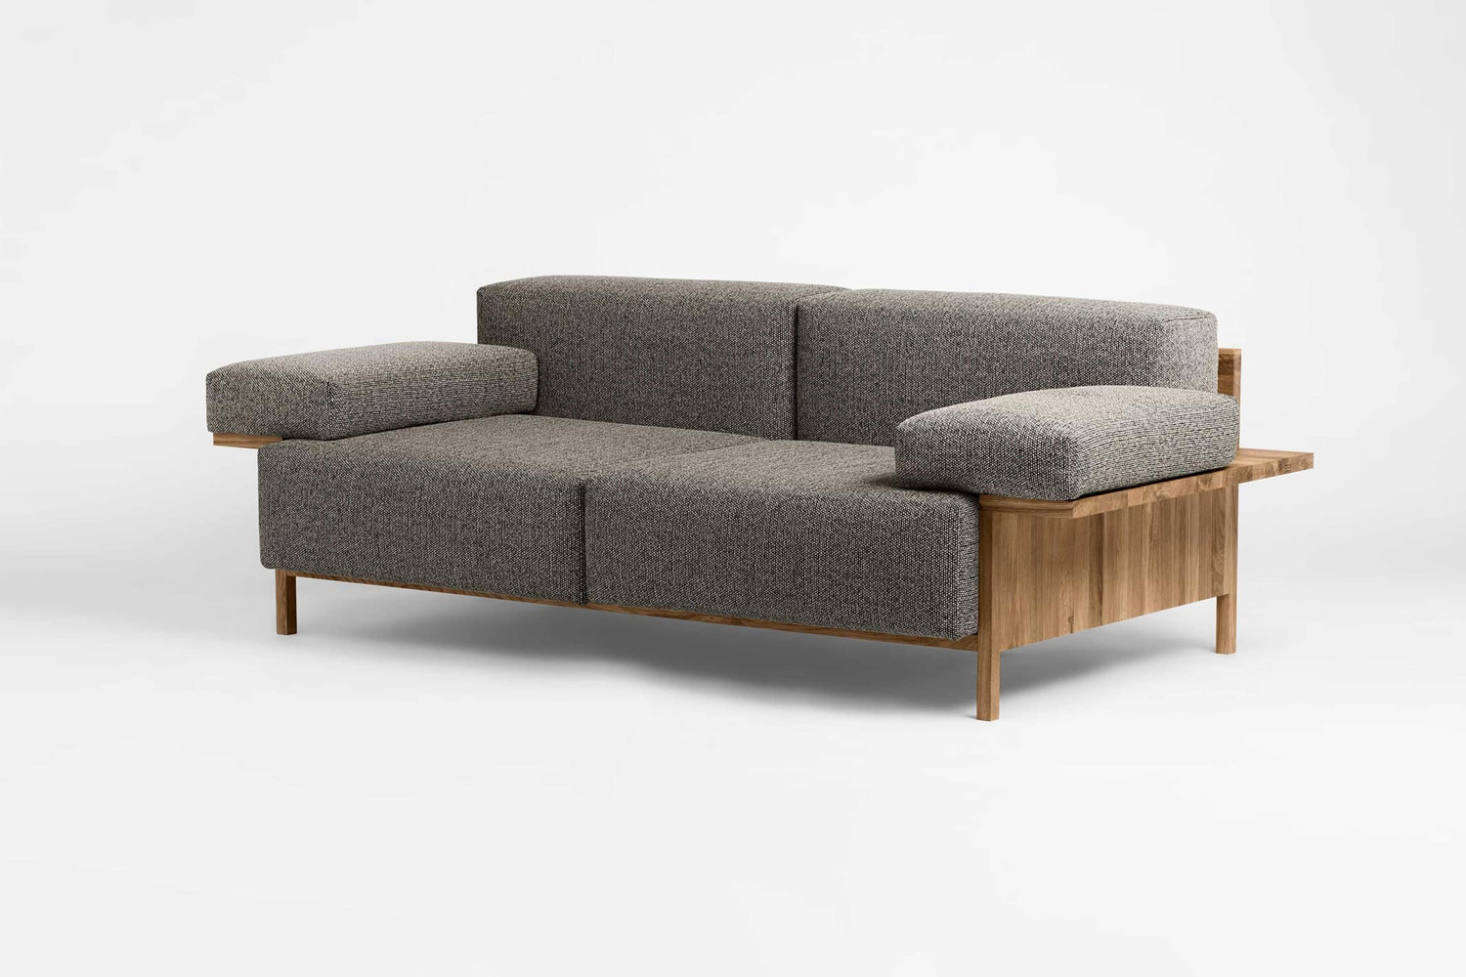 10 Easy Pieces: Modern Wood Frame Sofas - Remodelista